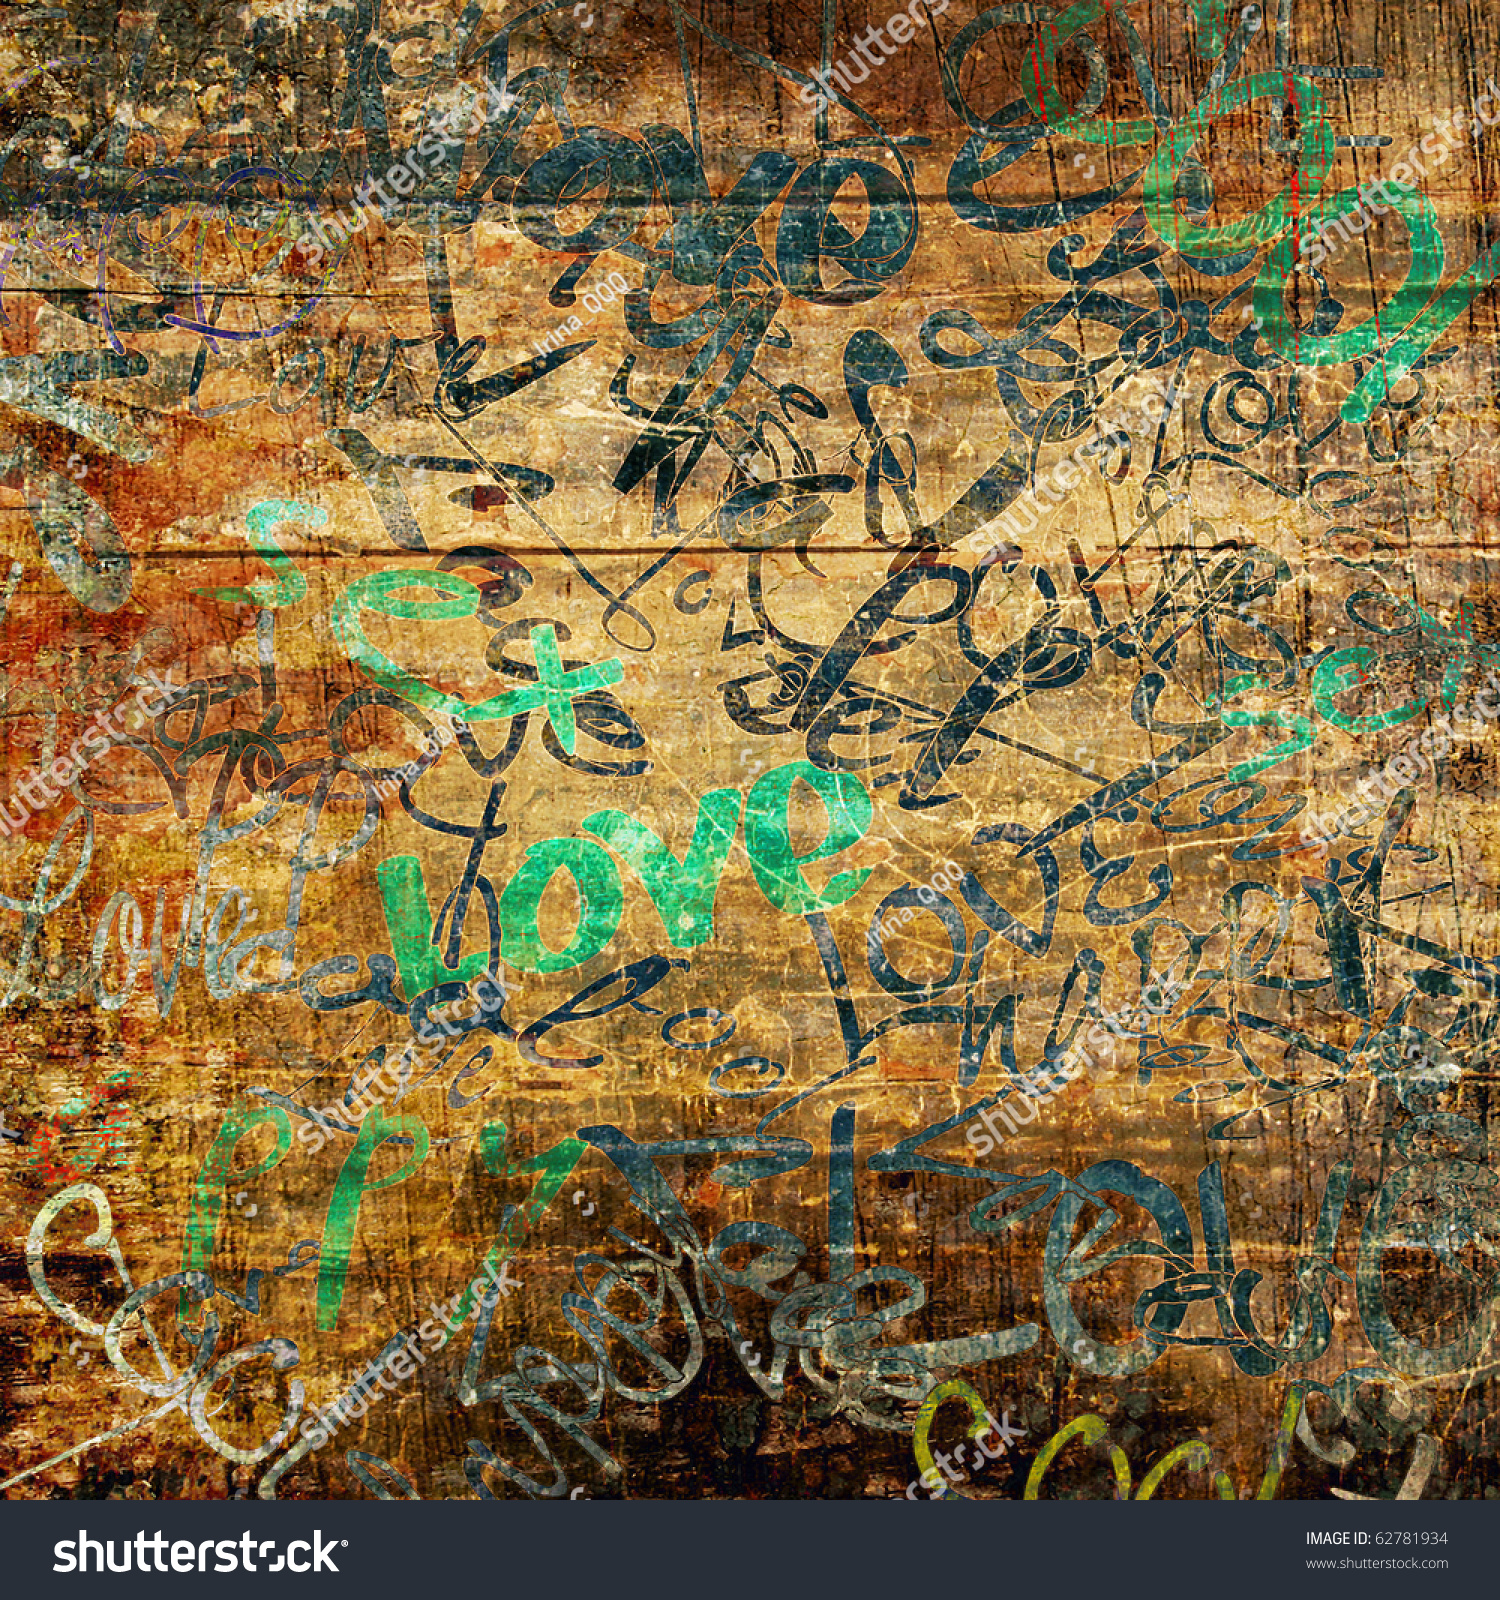 Graffiti art on wood - Art Urban Graffiti On Brown Wood Background With Word Love In Green And Blue Colors